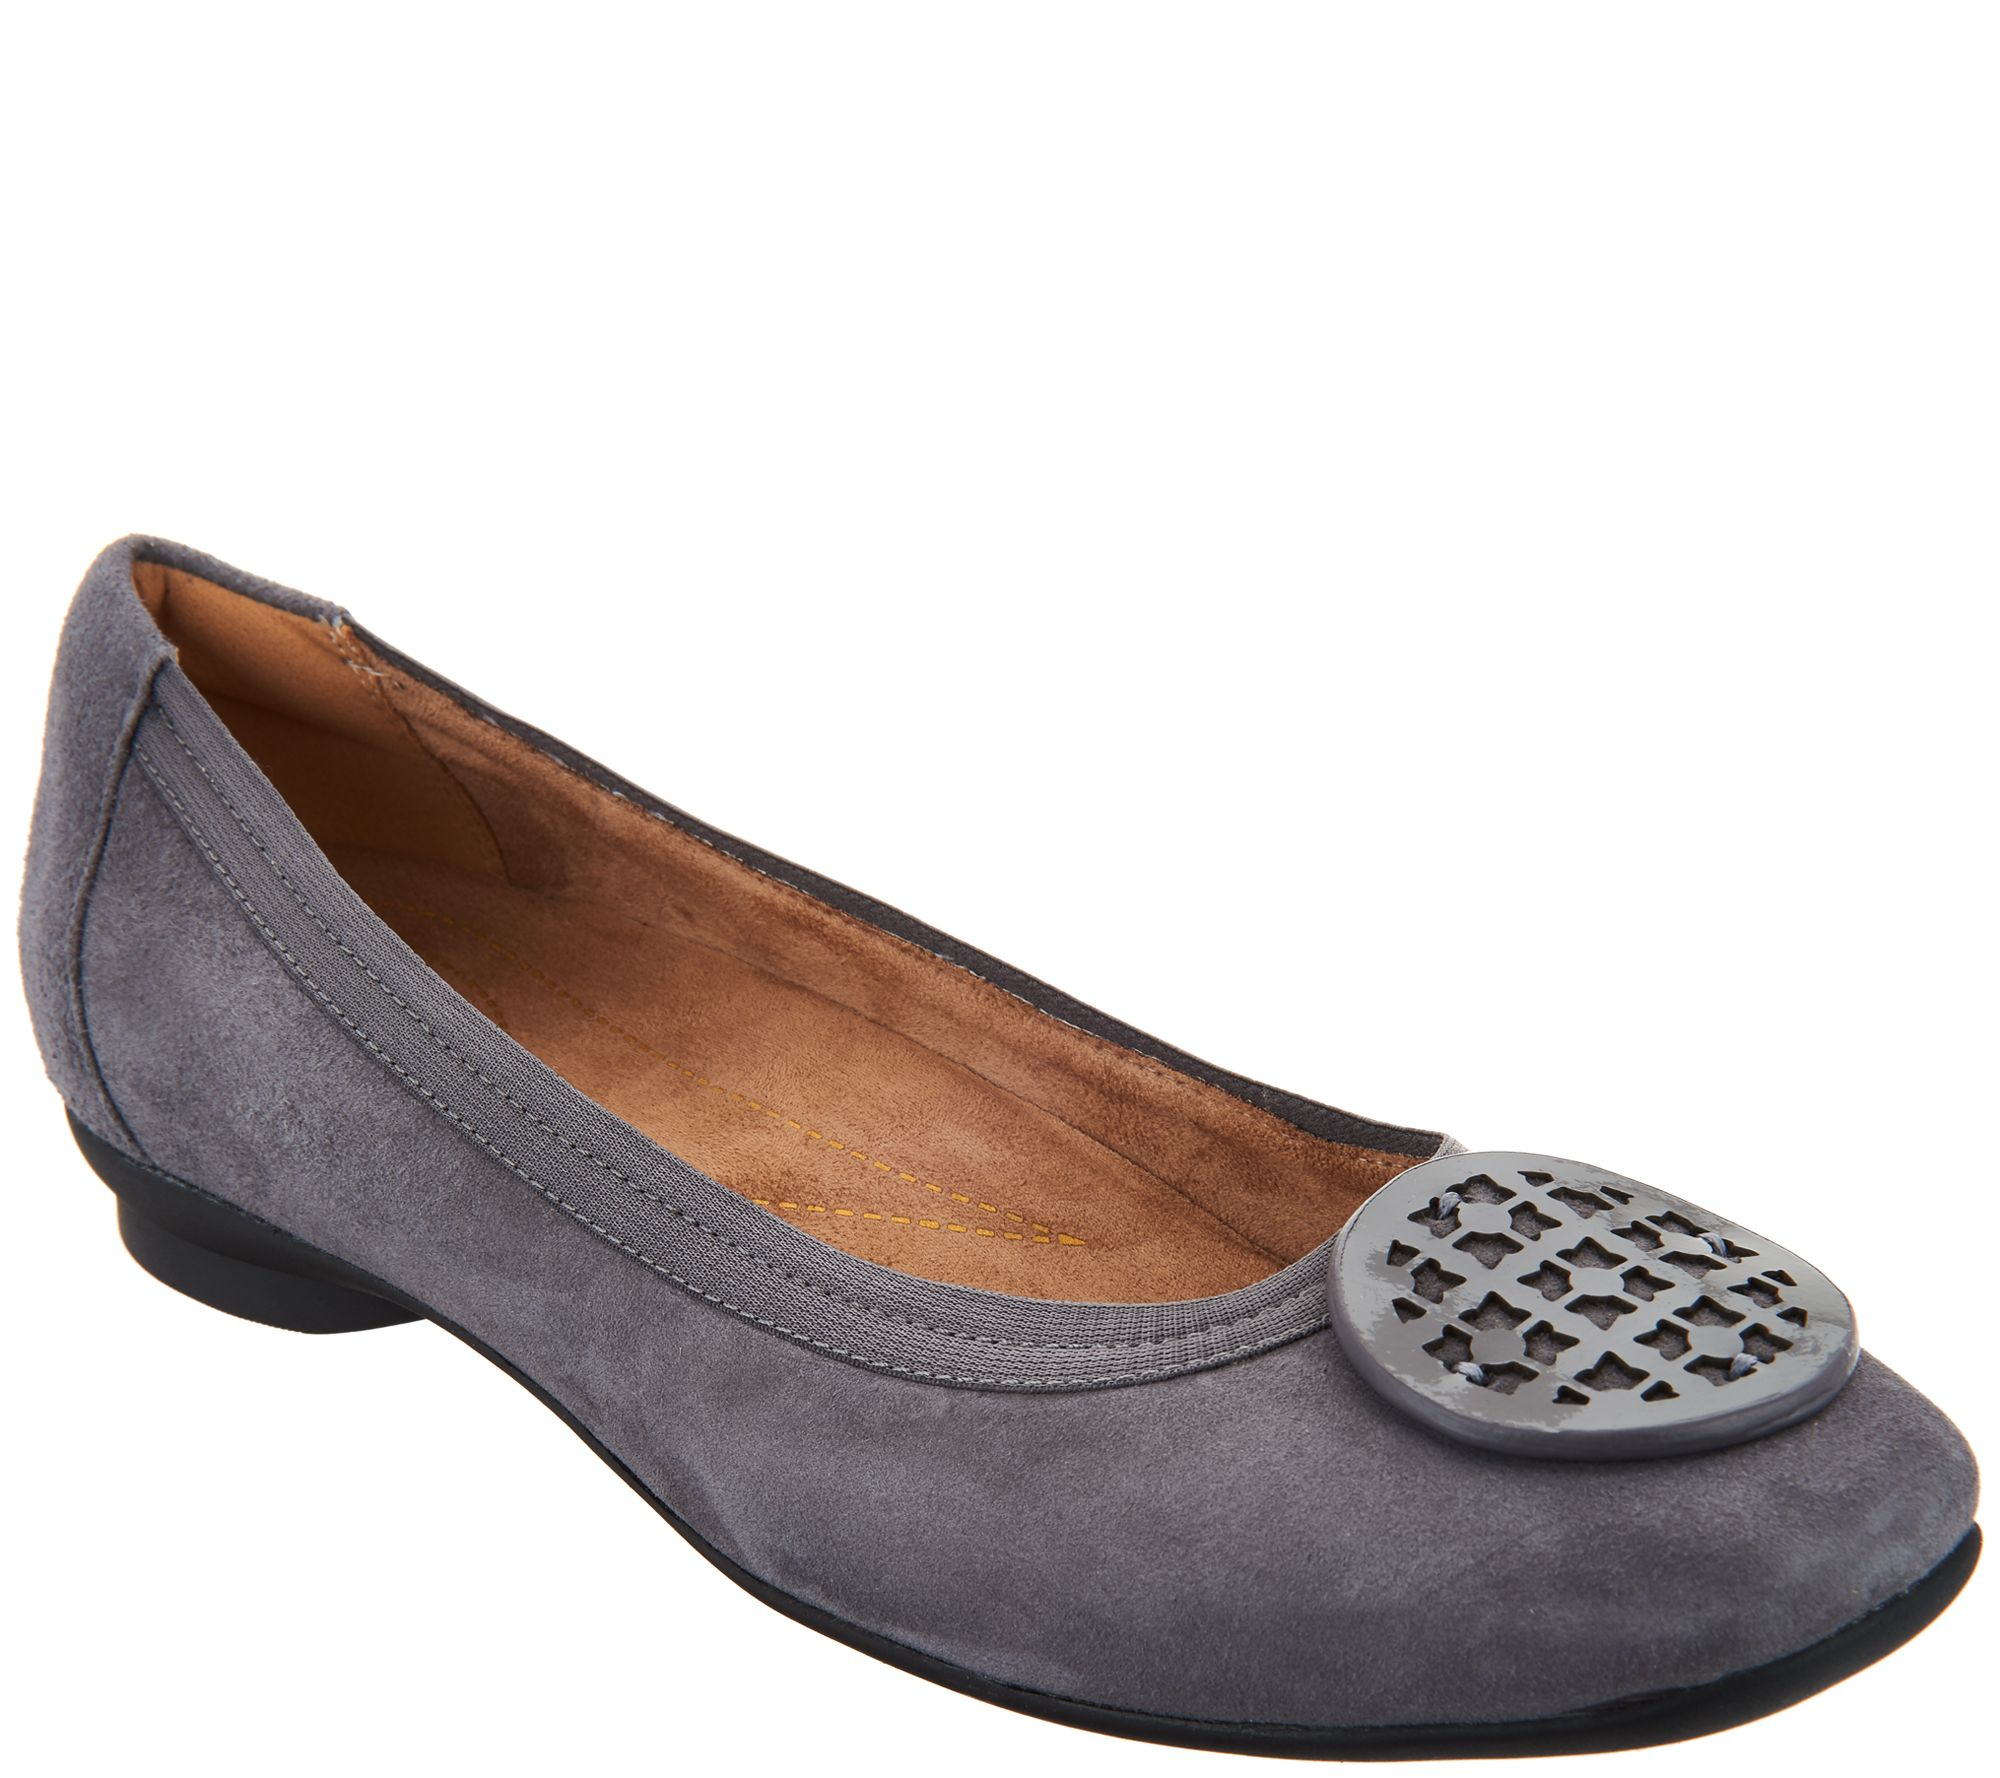 30bbb939defd Clarks Artisan Leather Ballet Flats - Candra Blush - Page 1 — QVC.com